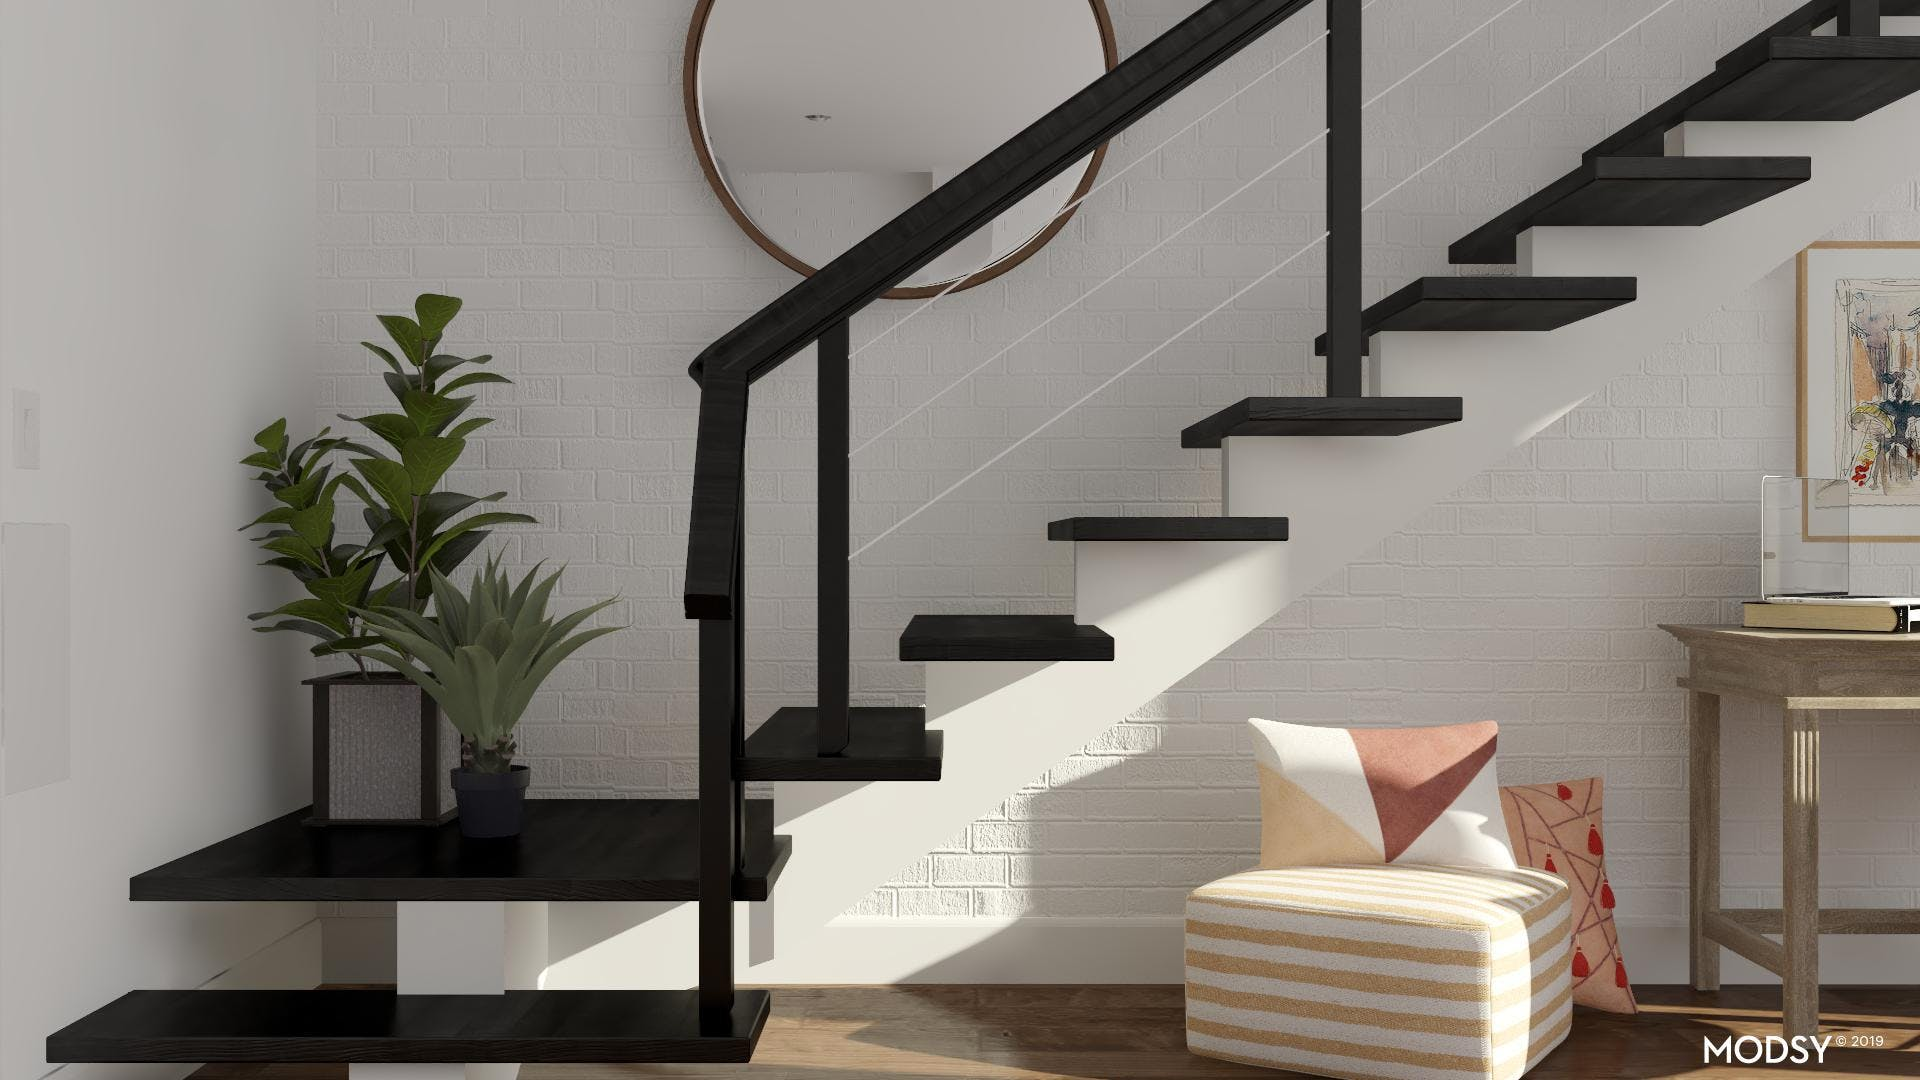 Dressing Up Transitional Spaces: Stairwell